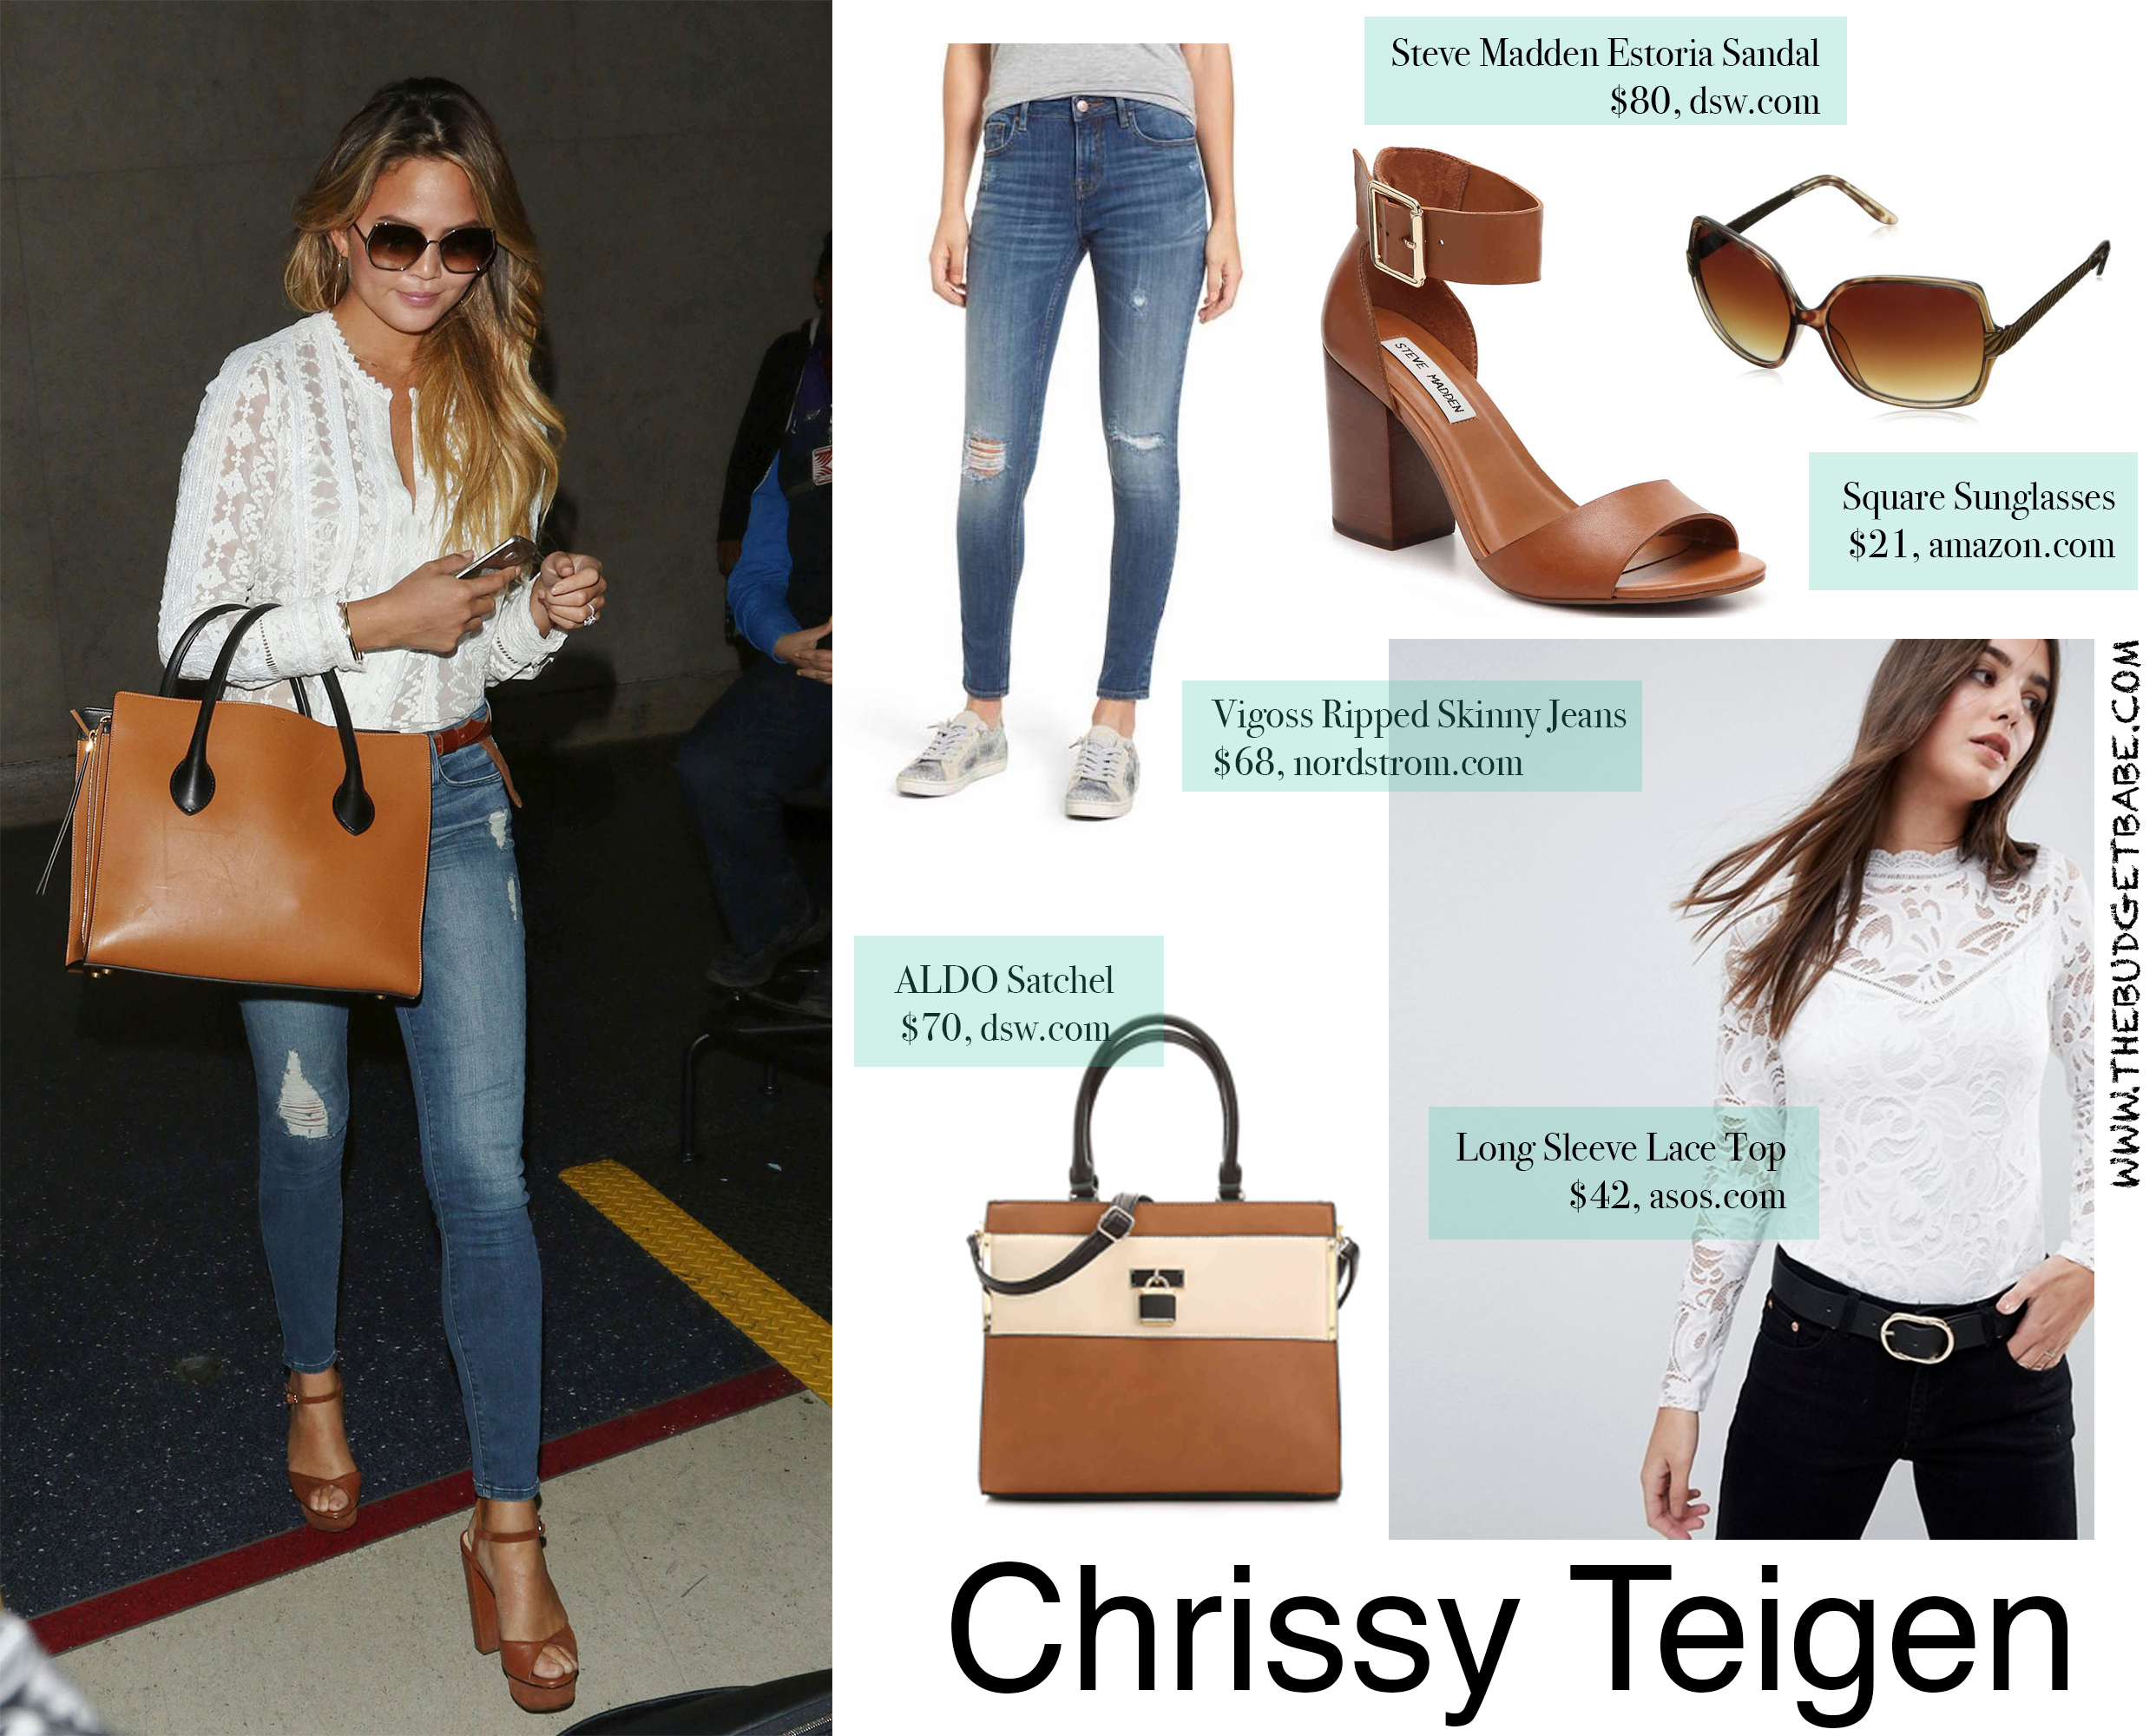 Chrissy Teigen look for less - white blouse skinny jeans and cognac heel sandals